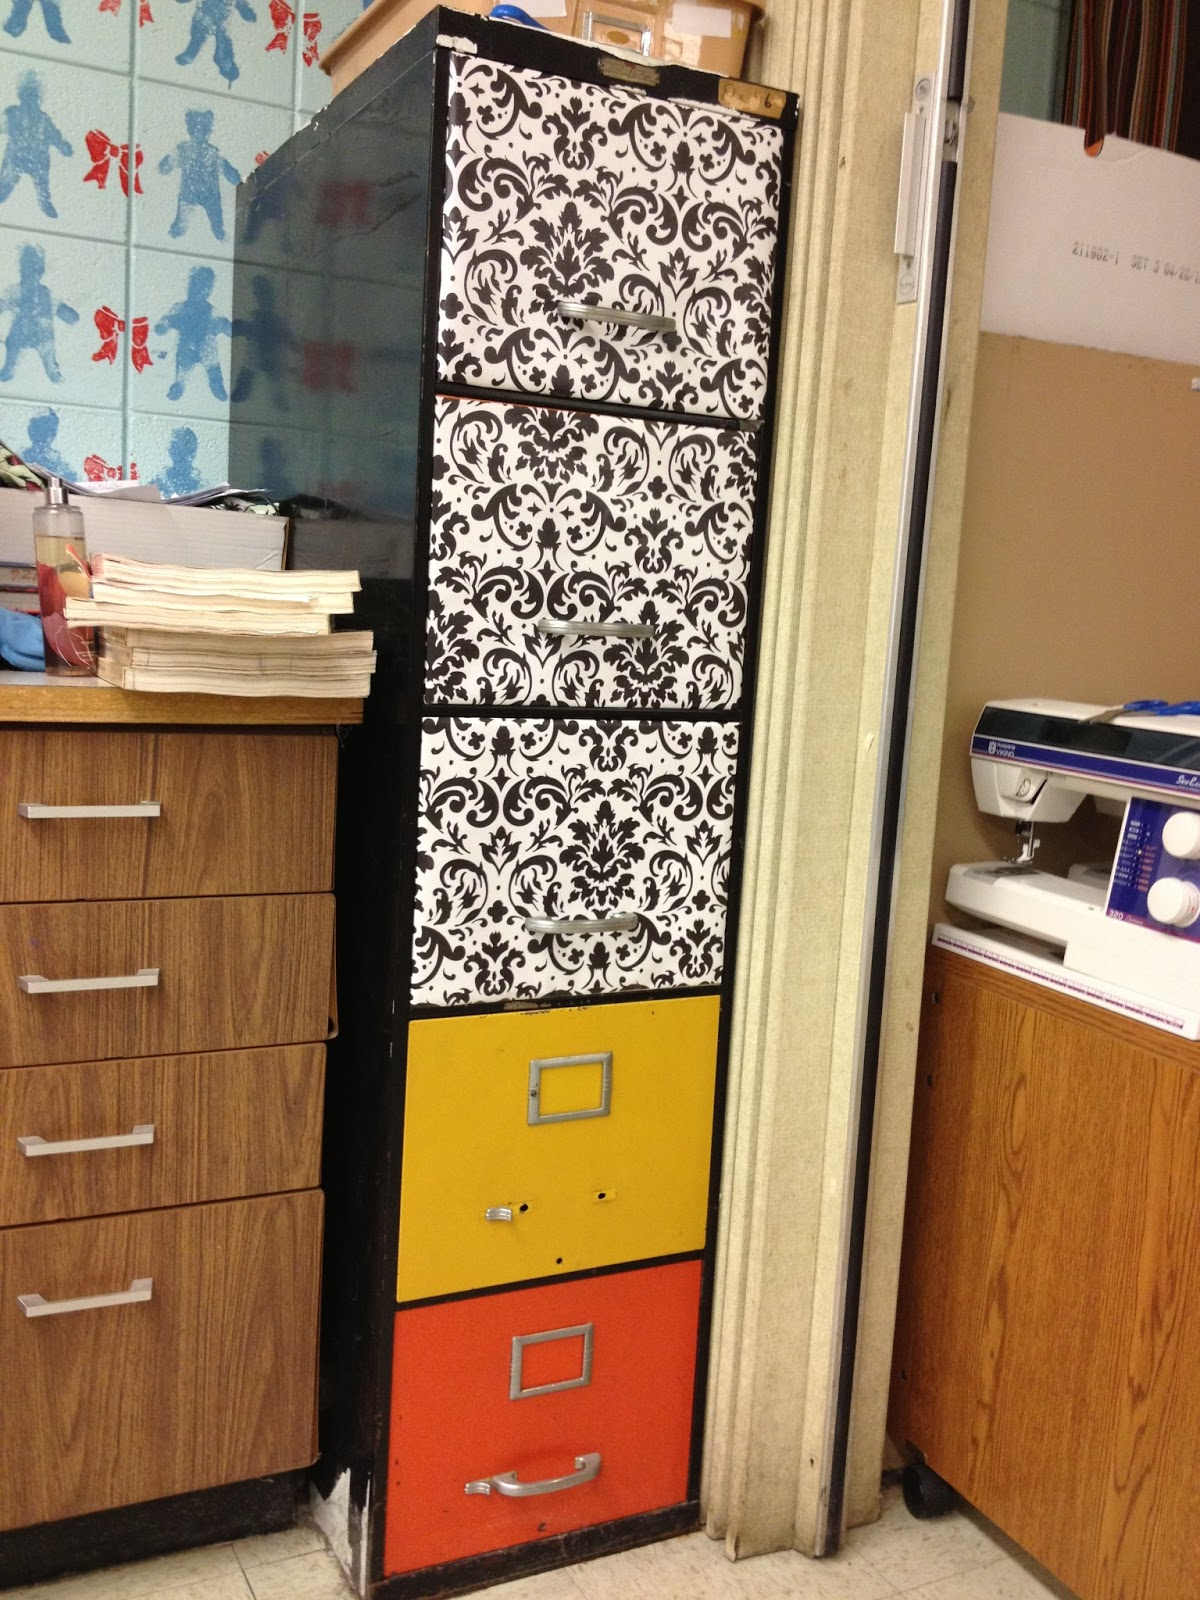 & FACS Classroom Ideas: File Cabinet Upgrade